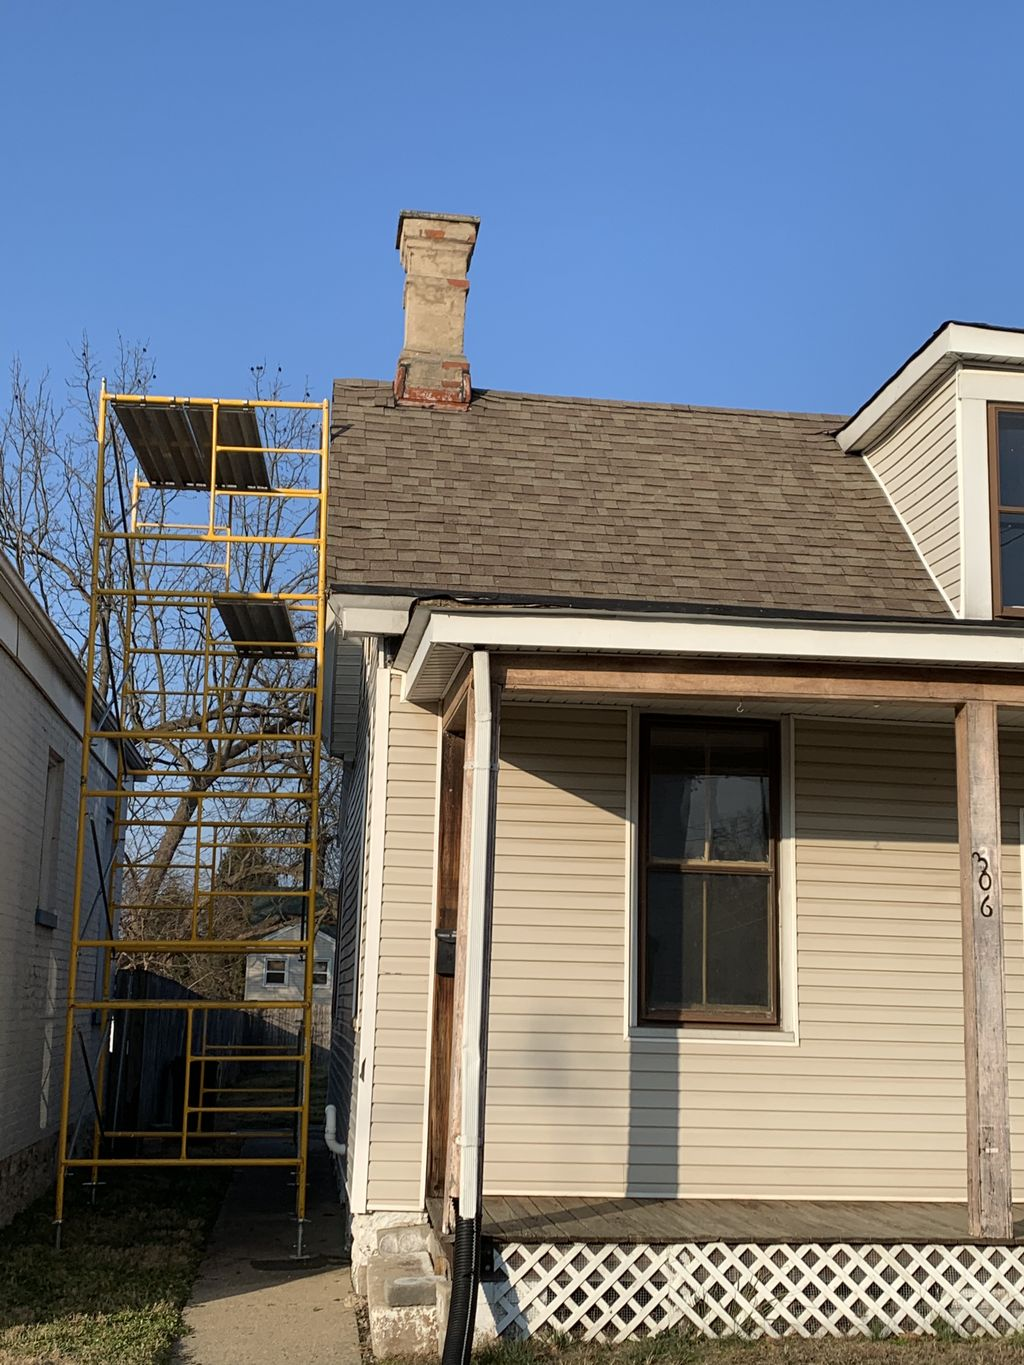 Chimney removal and home remodel